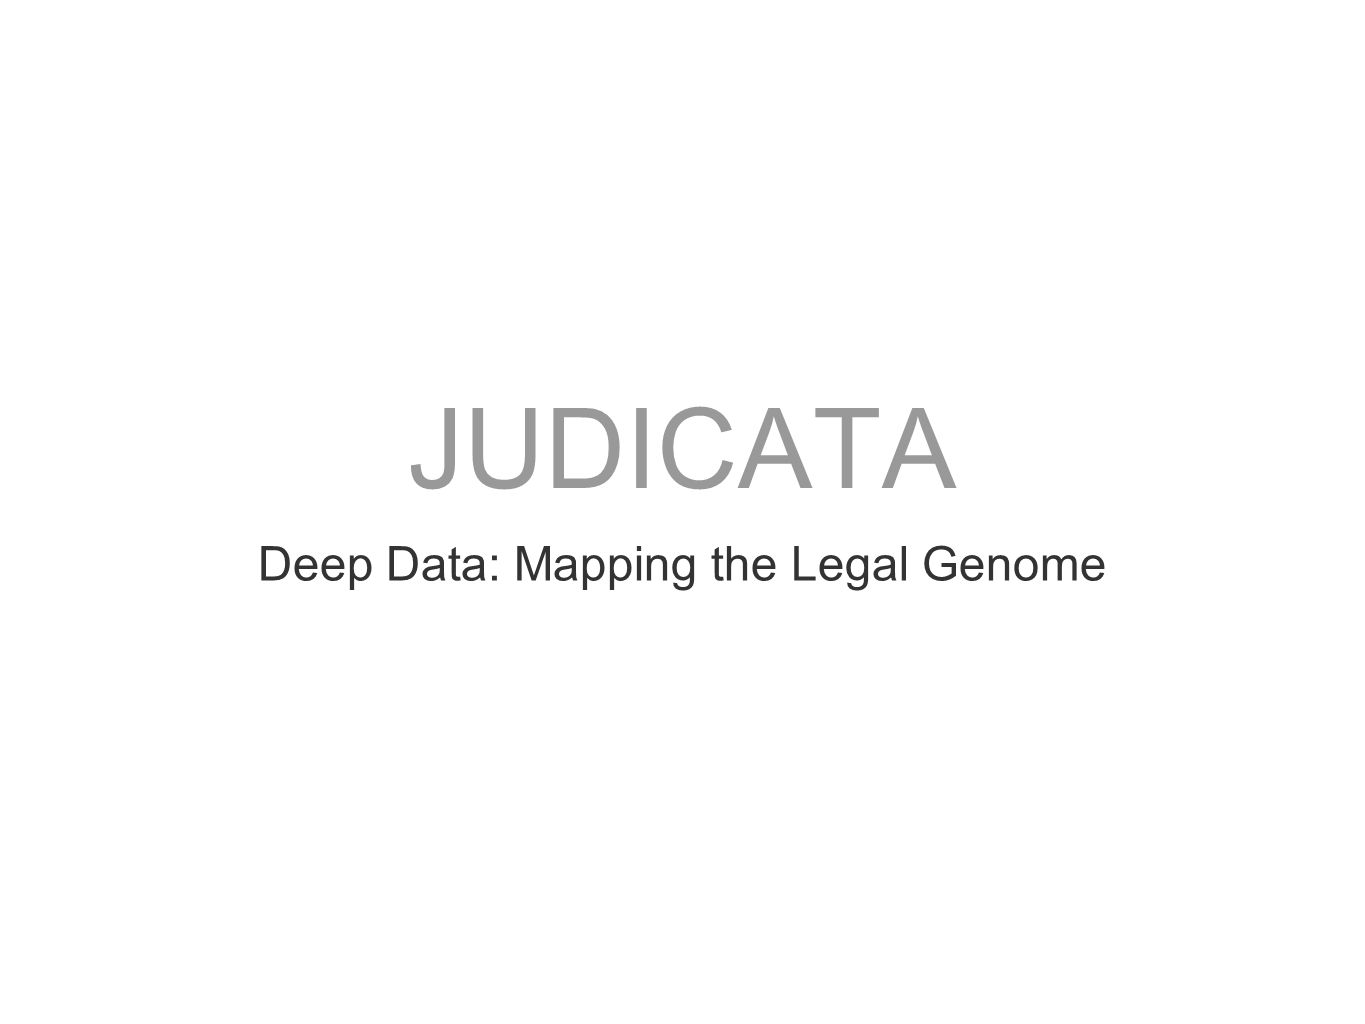 JUDICATA Deep Data: Mapping the Legal Genome